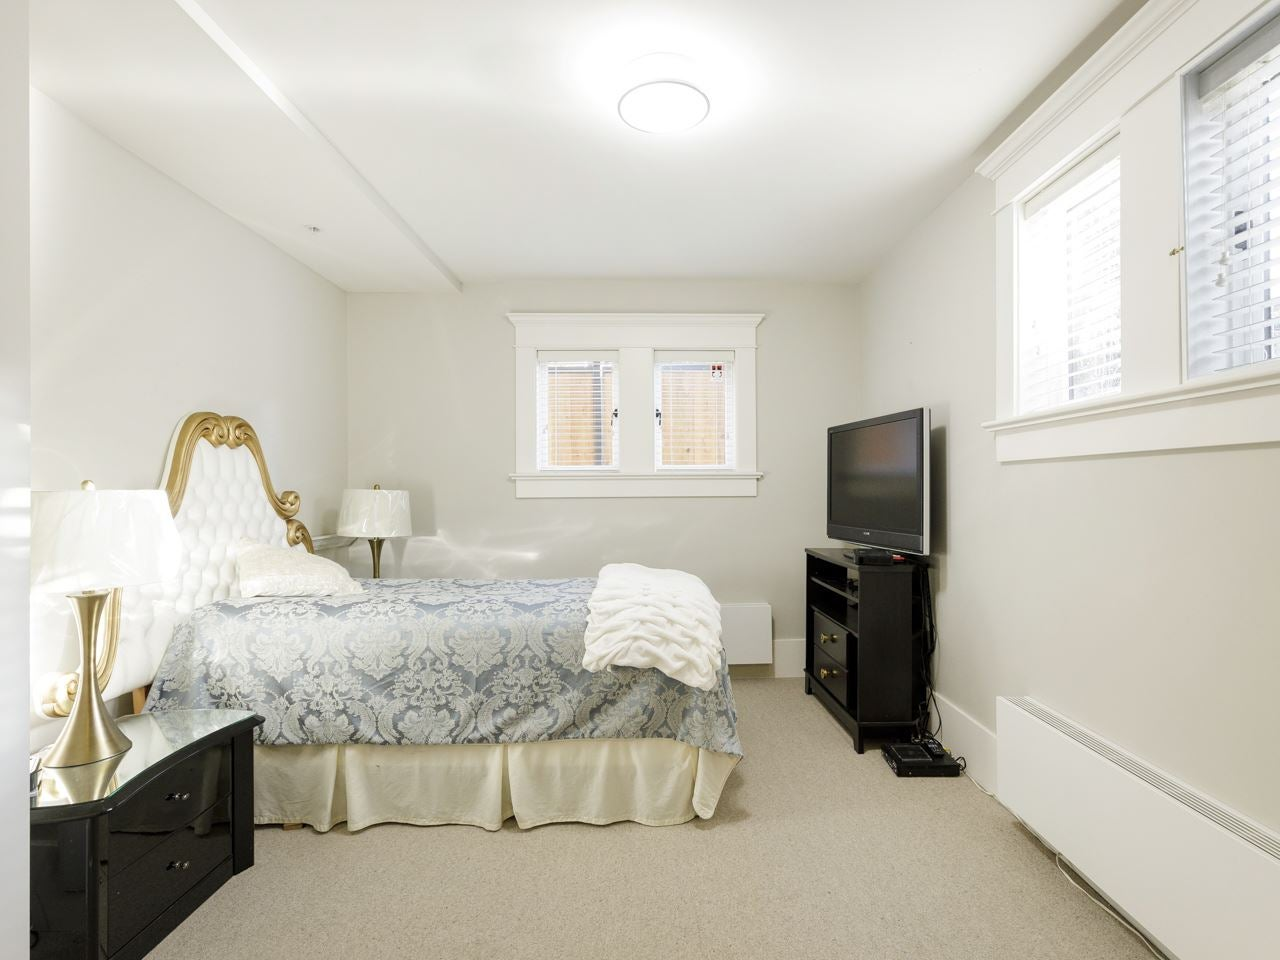 3 465 W 13TH AVENUE - Mount Pleasant VW Townhouse for sale, 3 Bedrooms (R2526442) - #7